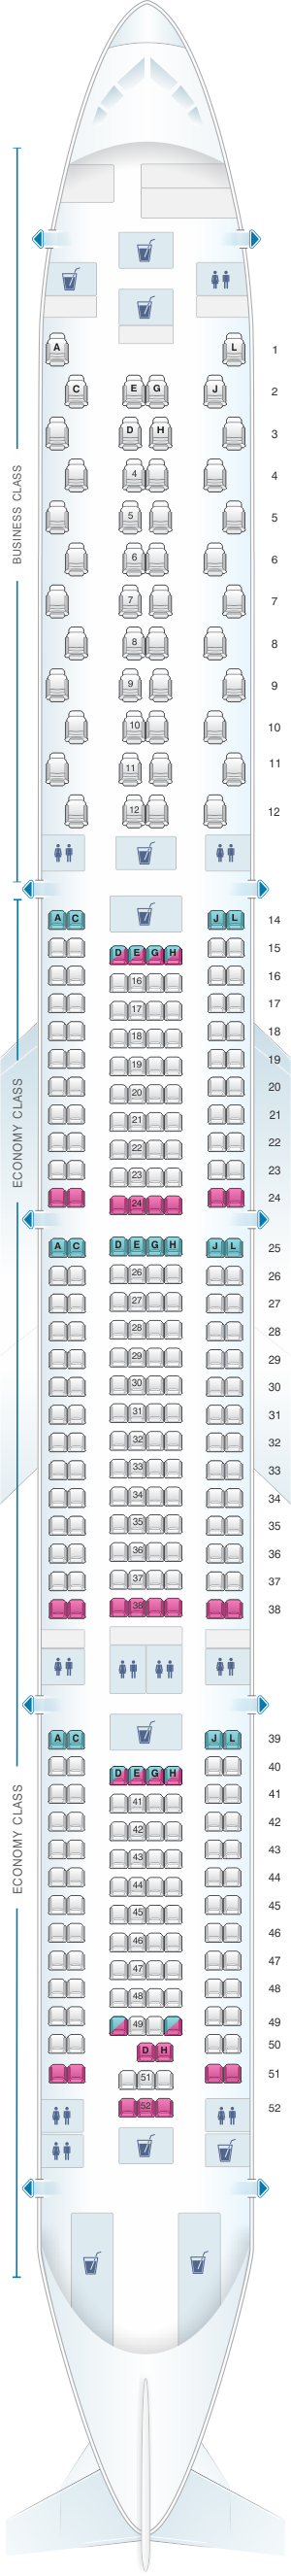 Seat map for Iberia Airbus A340 600 V1